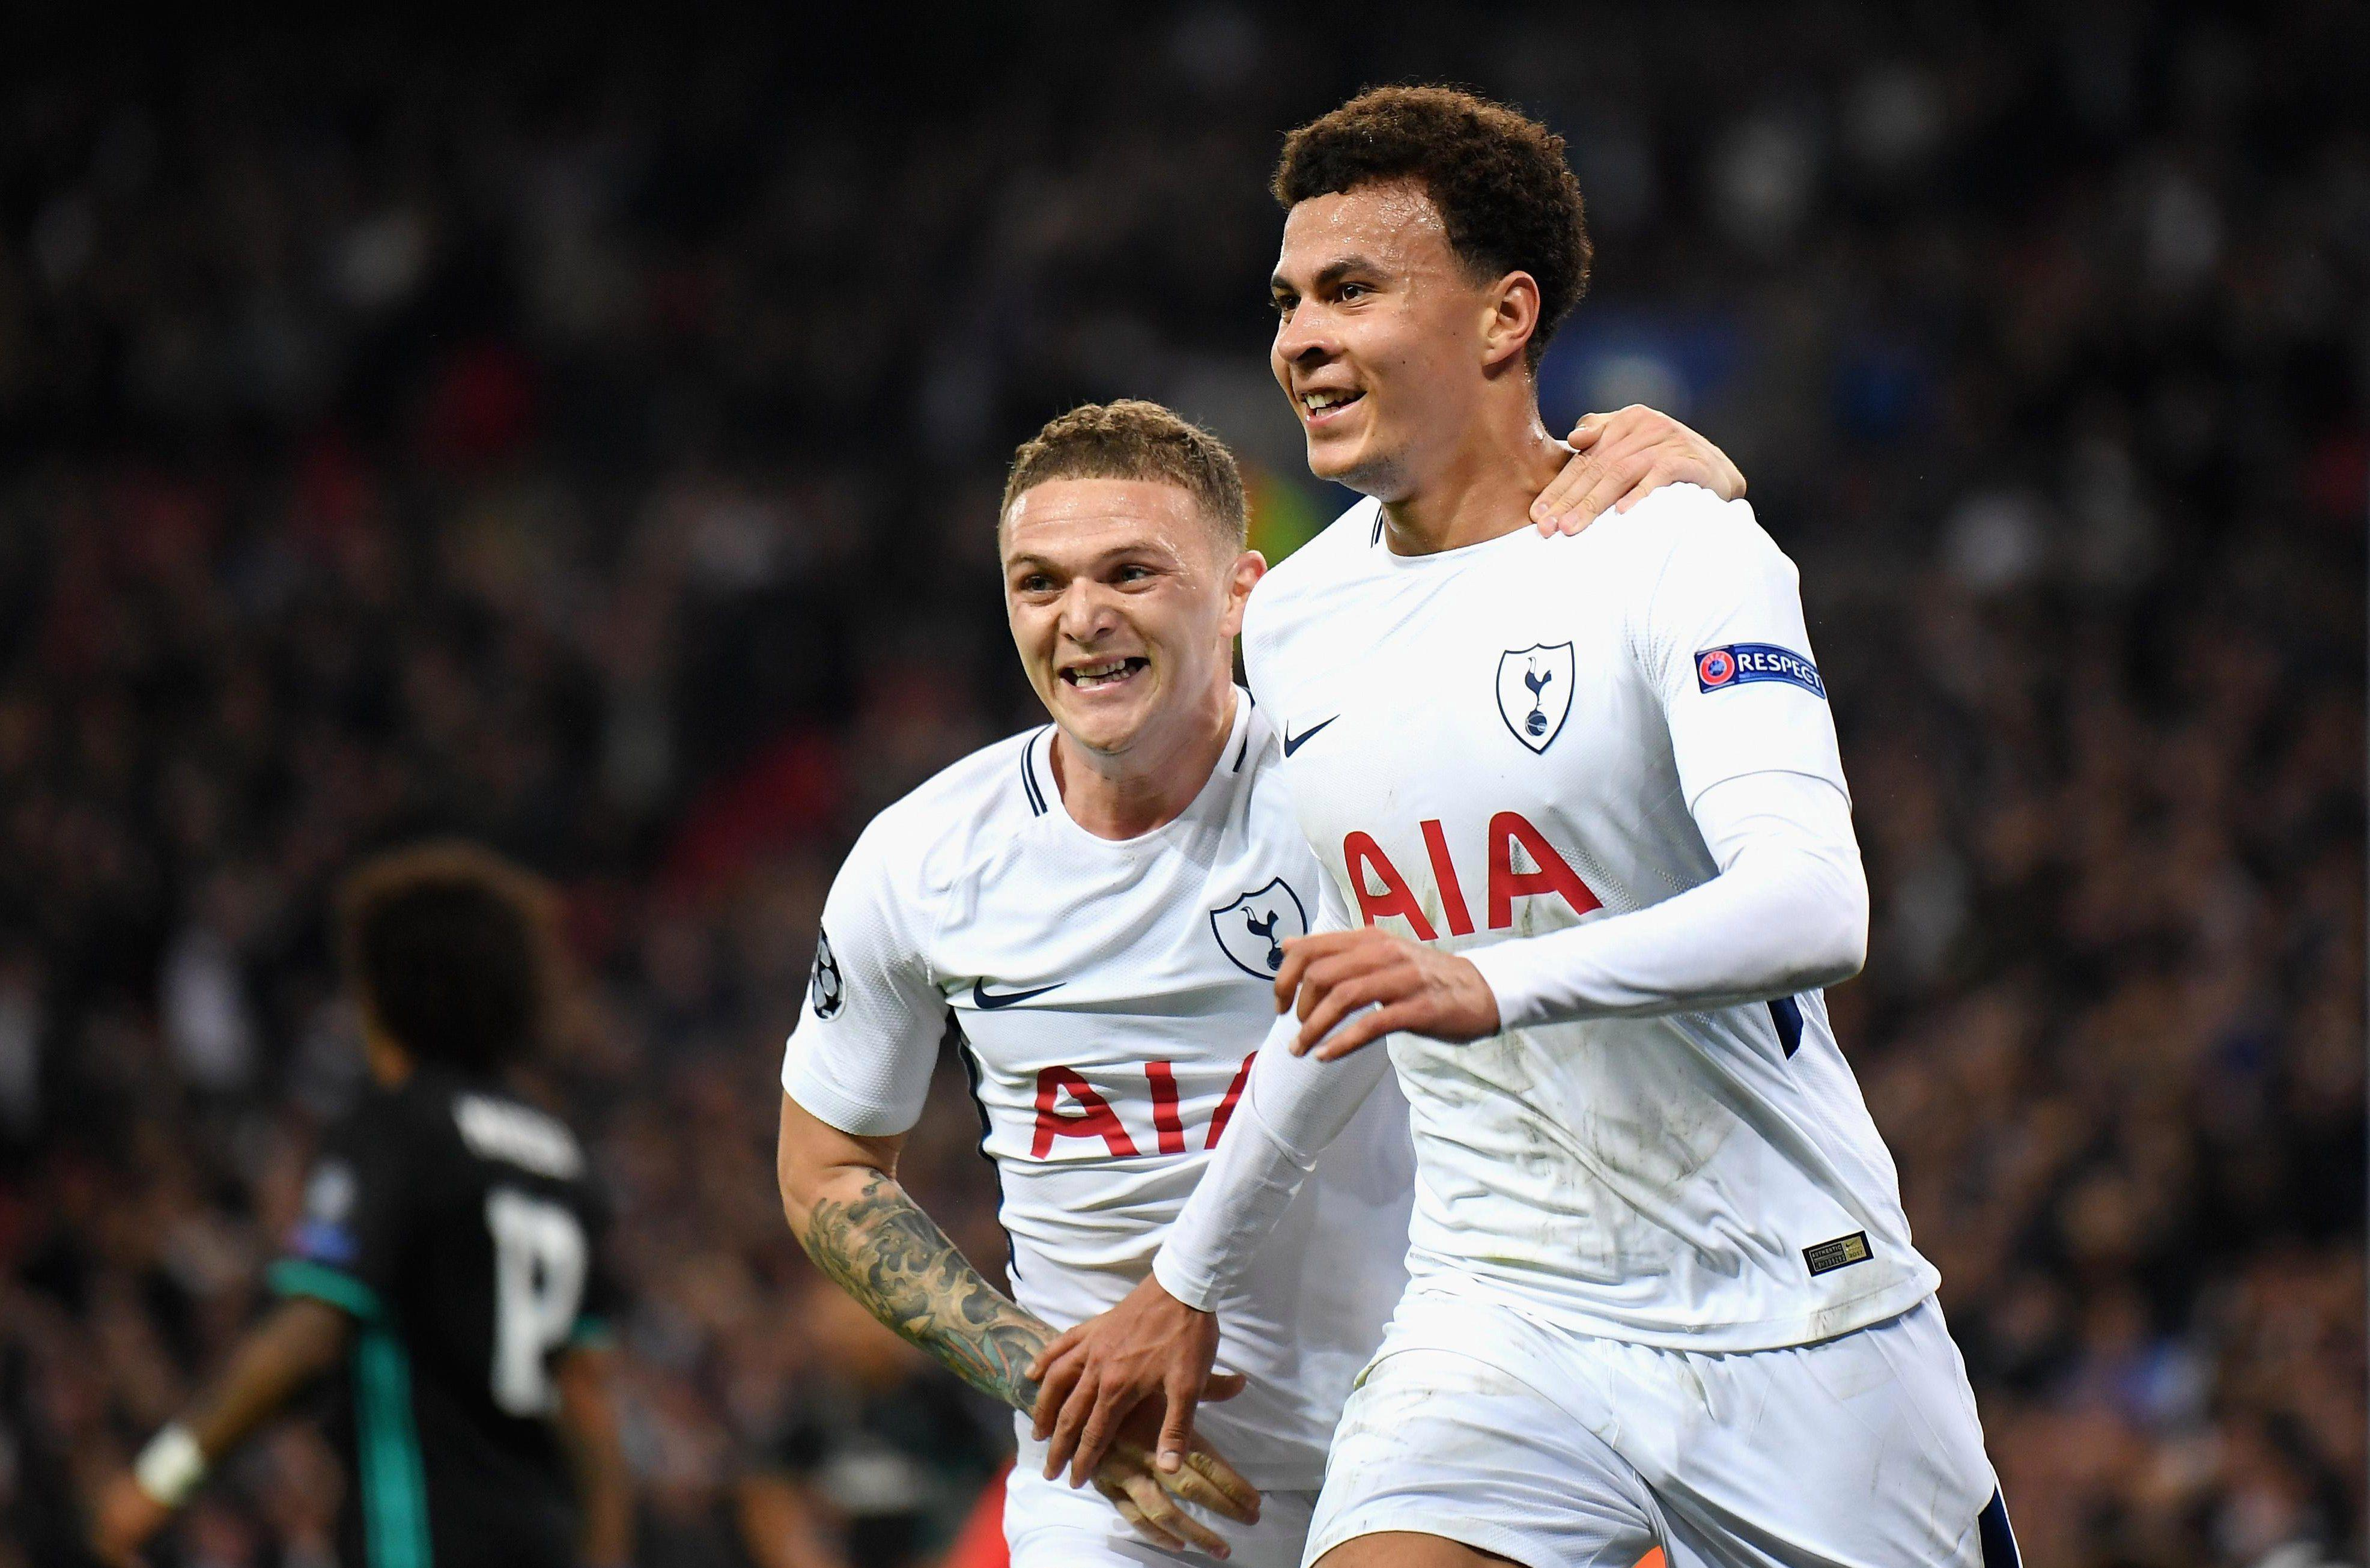 Dele Alli has been a revelation for Spurs